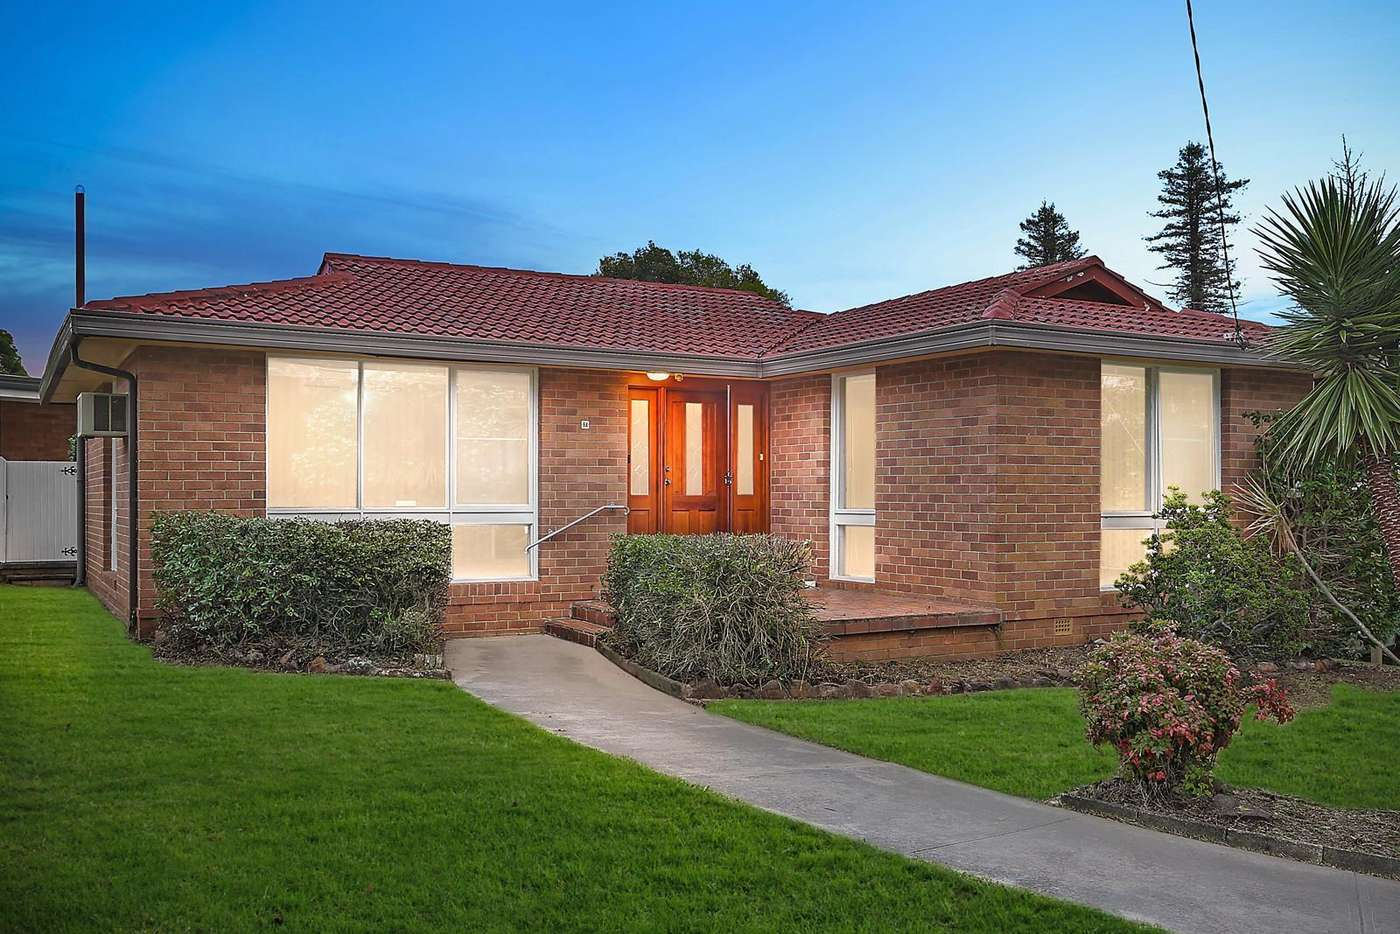 Main view of Homely house listing, 84 Waring Street, Marsfield NSW 2122